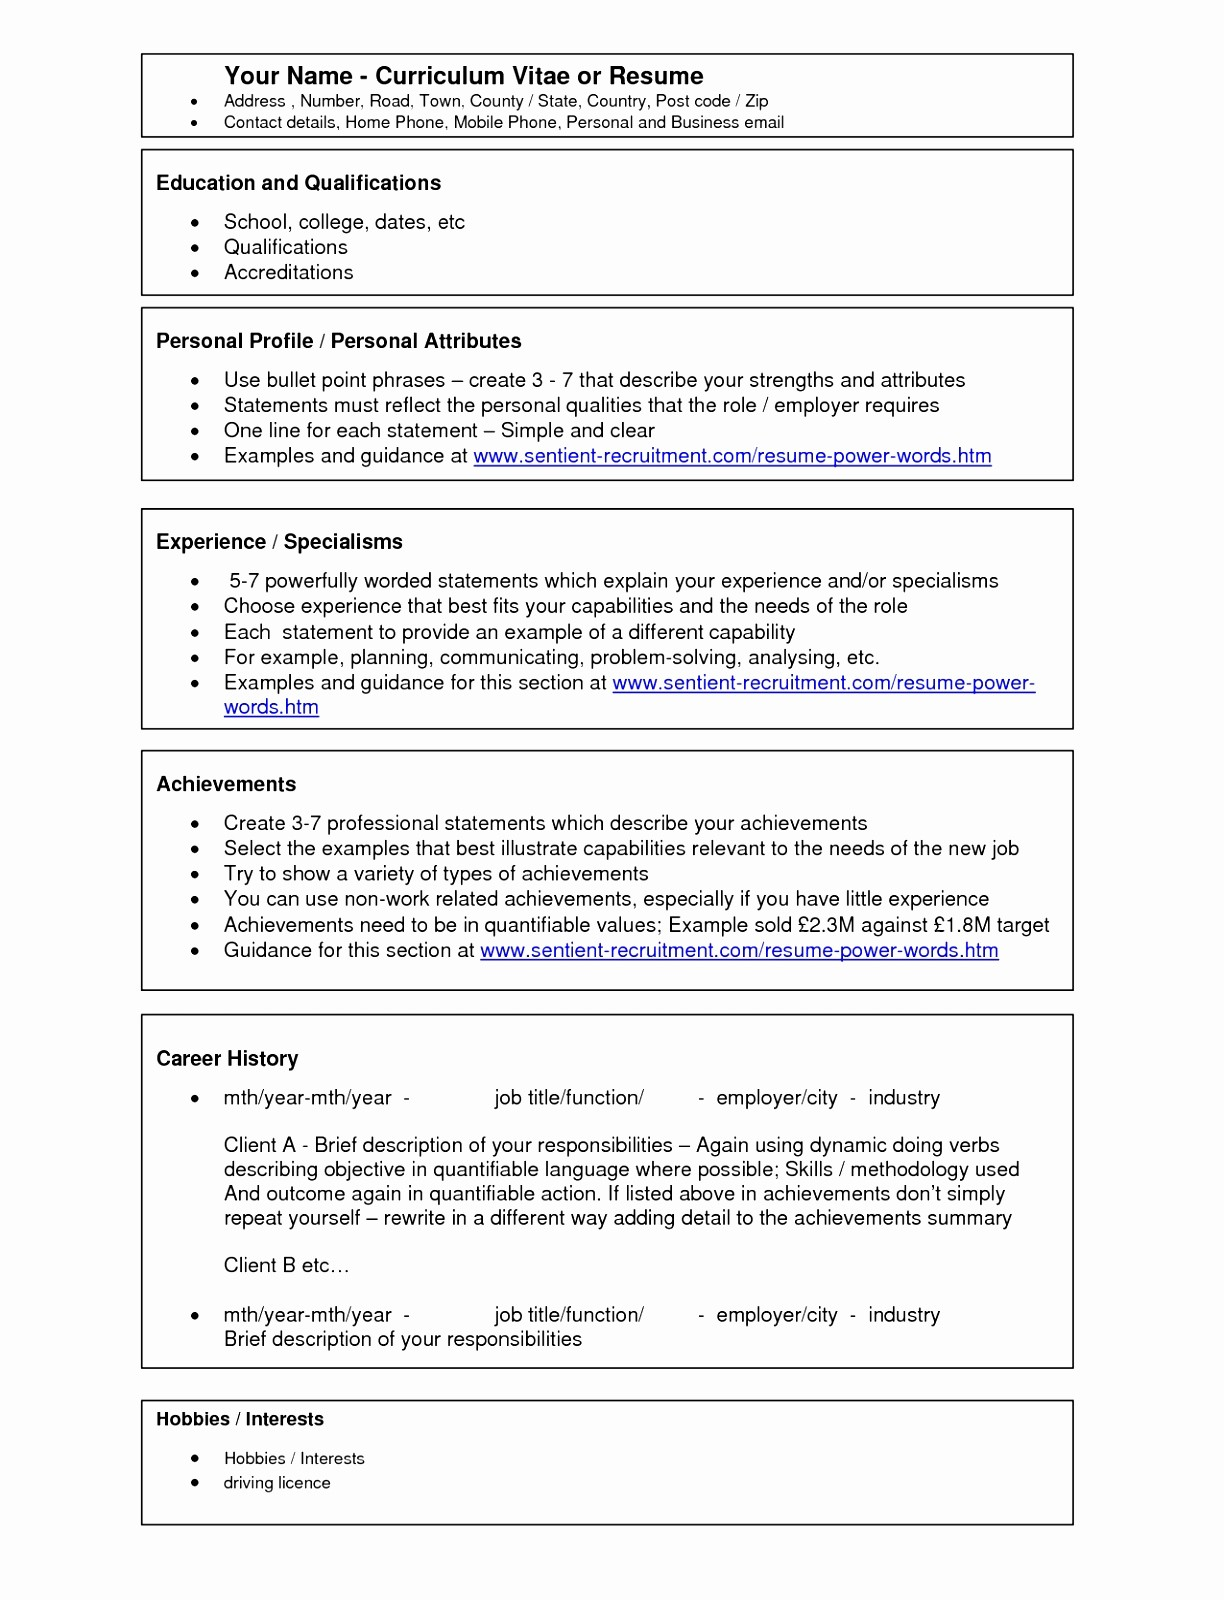 Resume Template Ms Word 2010 Awesome 9 Cv Templates Word 2010 Uaopt